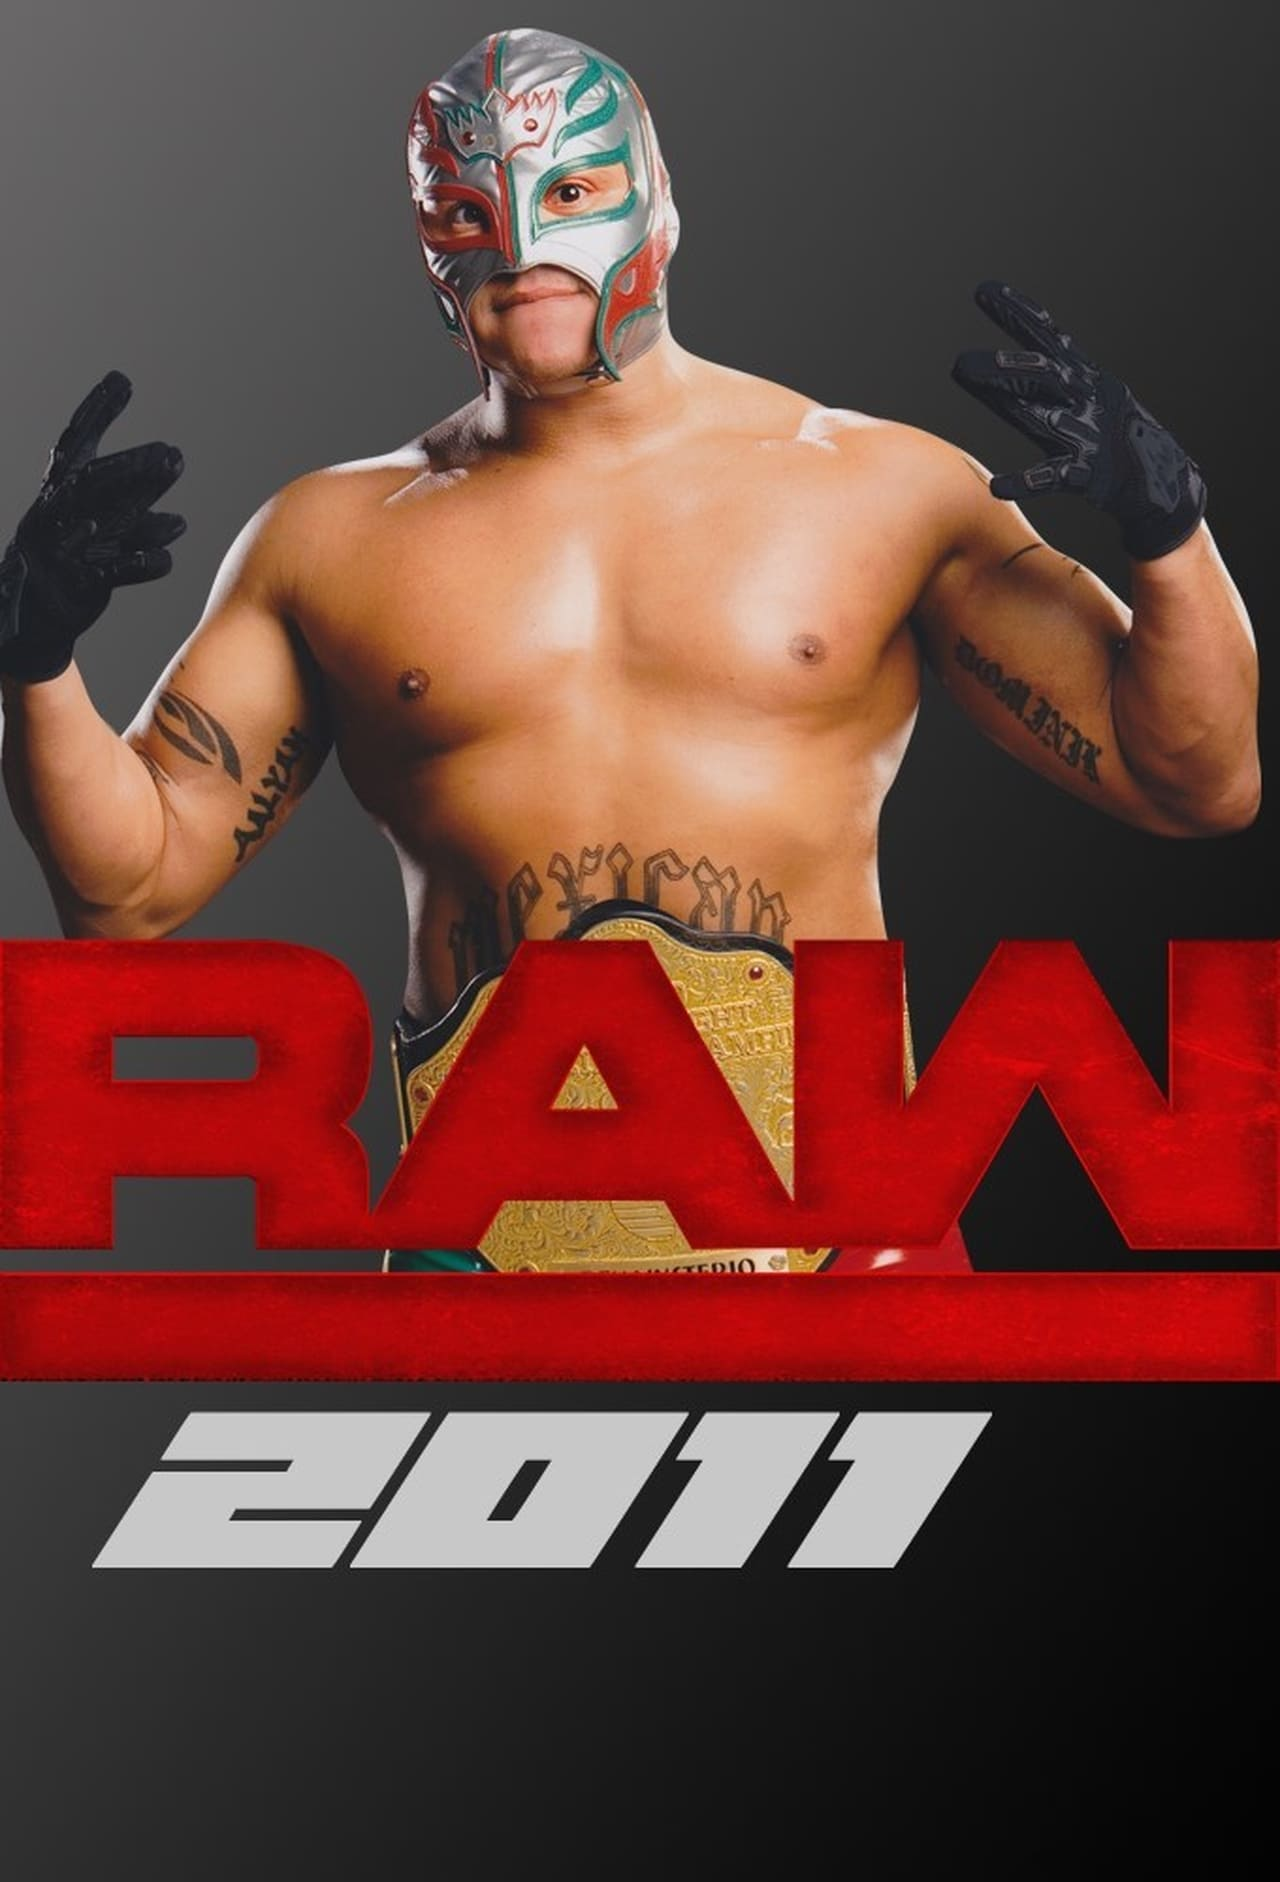 Putlocker Wwe Raw Season 19 (2011)